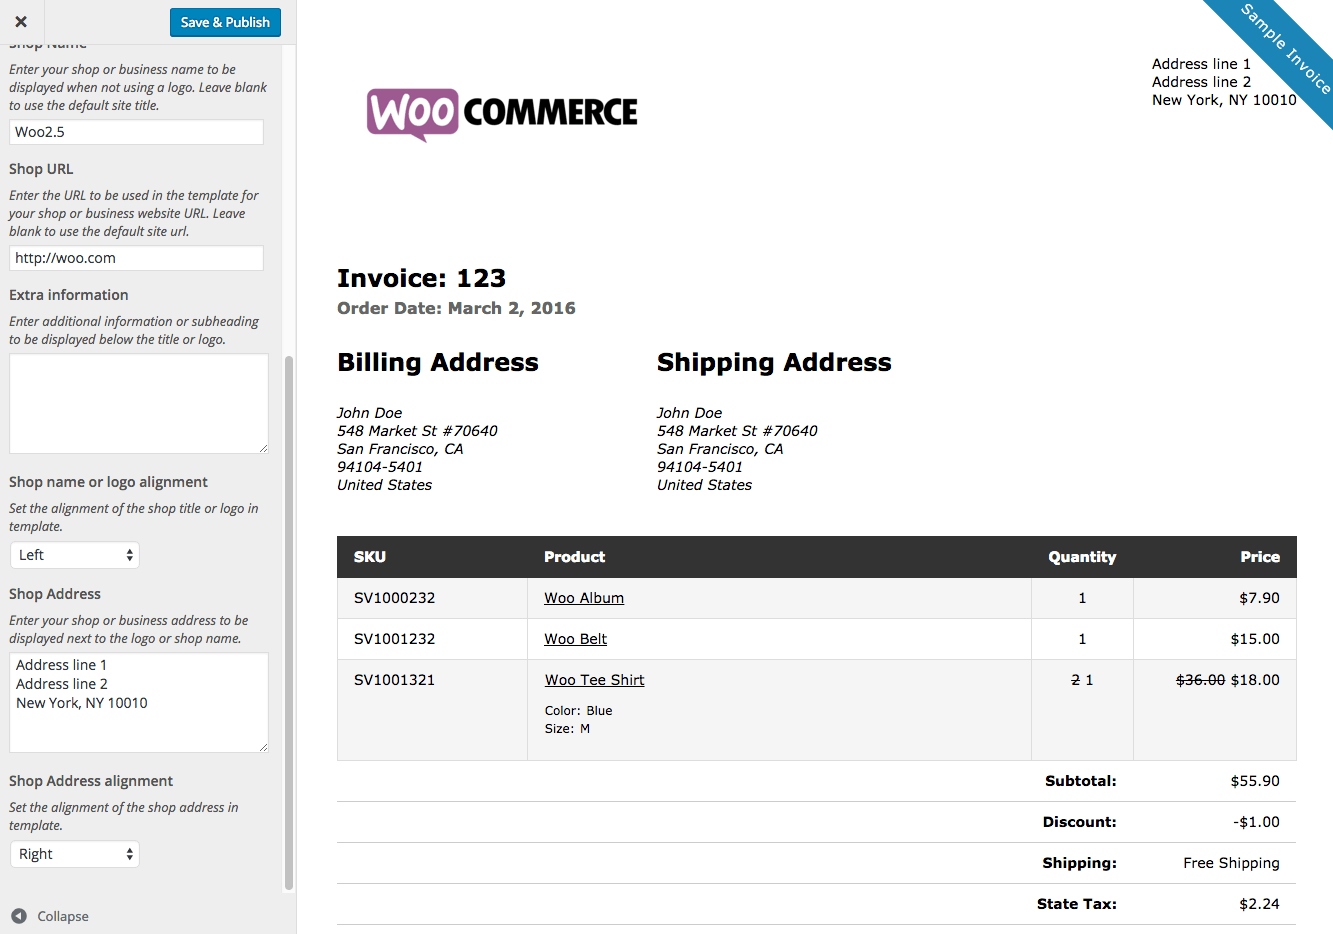 Weirdmailus  Nice Woocommerce Print Invoices Amp Packing Lists  Woocommerce Docs With Exciting Woocommerce Print Invoices  Packing Lists Customizer With Charming Repair Invoice Also Ob Invoicing In Addition Consultant Invoice And Printable Invoices Free As Well As Apple Invoice Additionally Nch Express Invoice From Docswoocommercecom With Weirdmailus  Exciting Woocommerce Print Invoices Amp Packing Lists  Woocommerce Docs With Charming Woocommerce Print Invoices  Packing Lists Customizer And Nice Repair Invoice Also Ob Invoicing In Addition Consultant Invoice From Docswoocommercecom